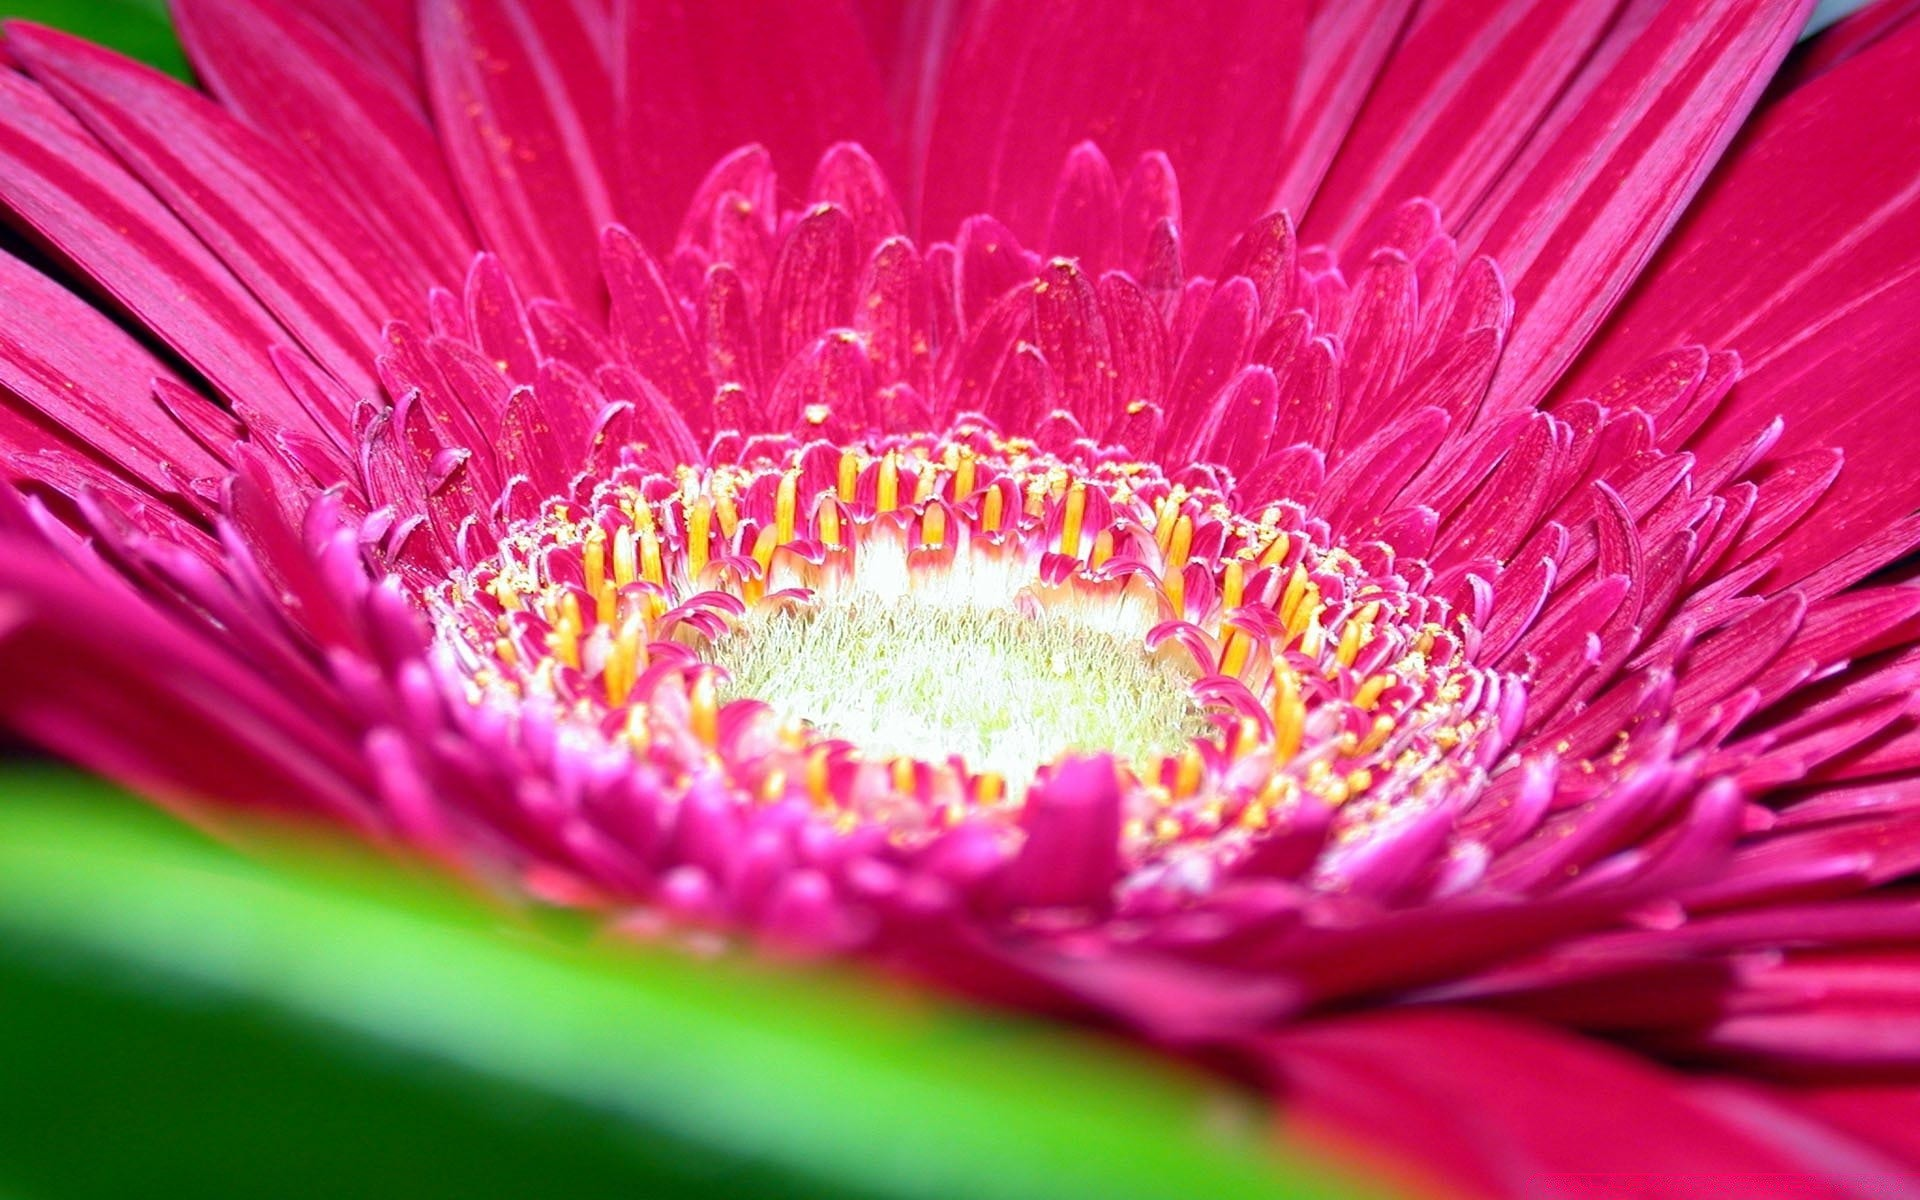 Gerbera Daisies Flowers 10 Android Wallpapers For Free